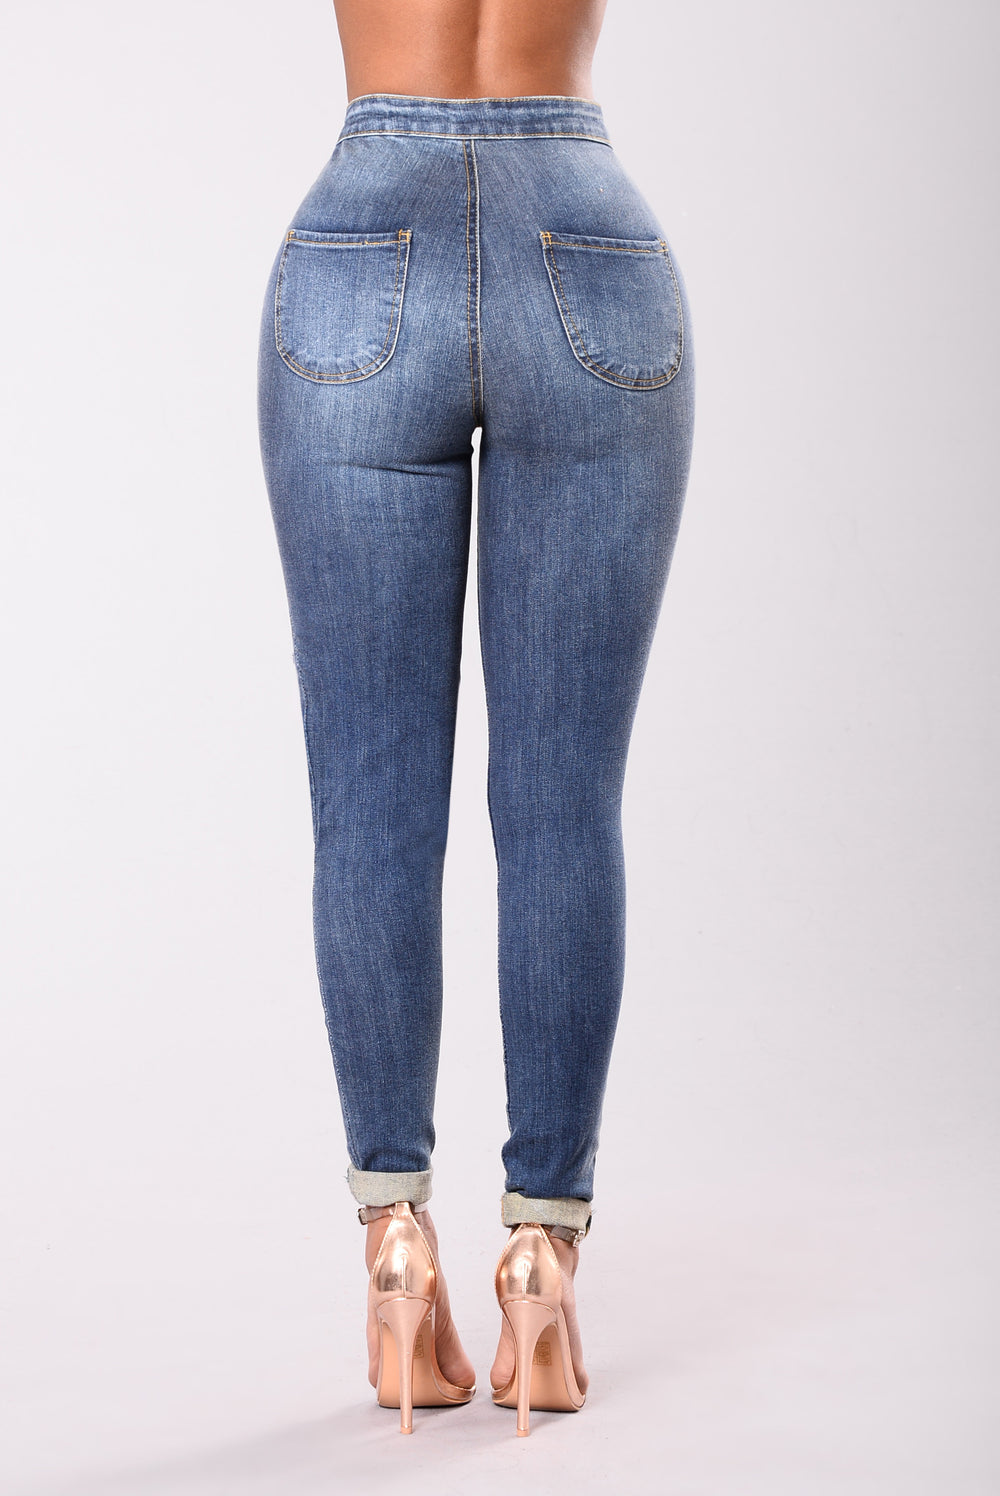 Figure Me Out Jeans - Dark Stone Wash